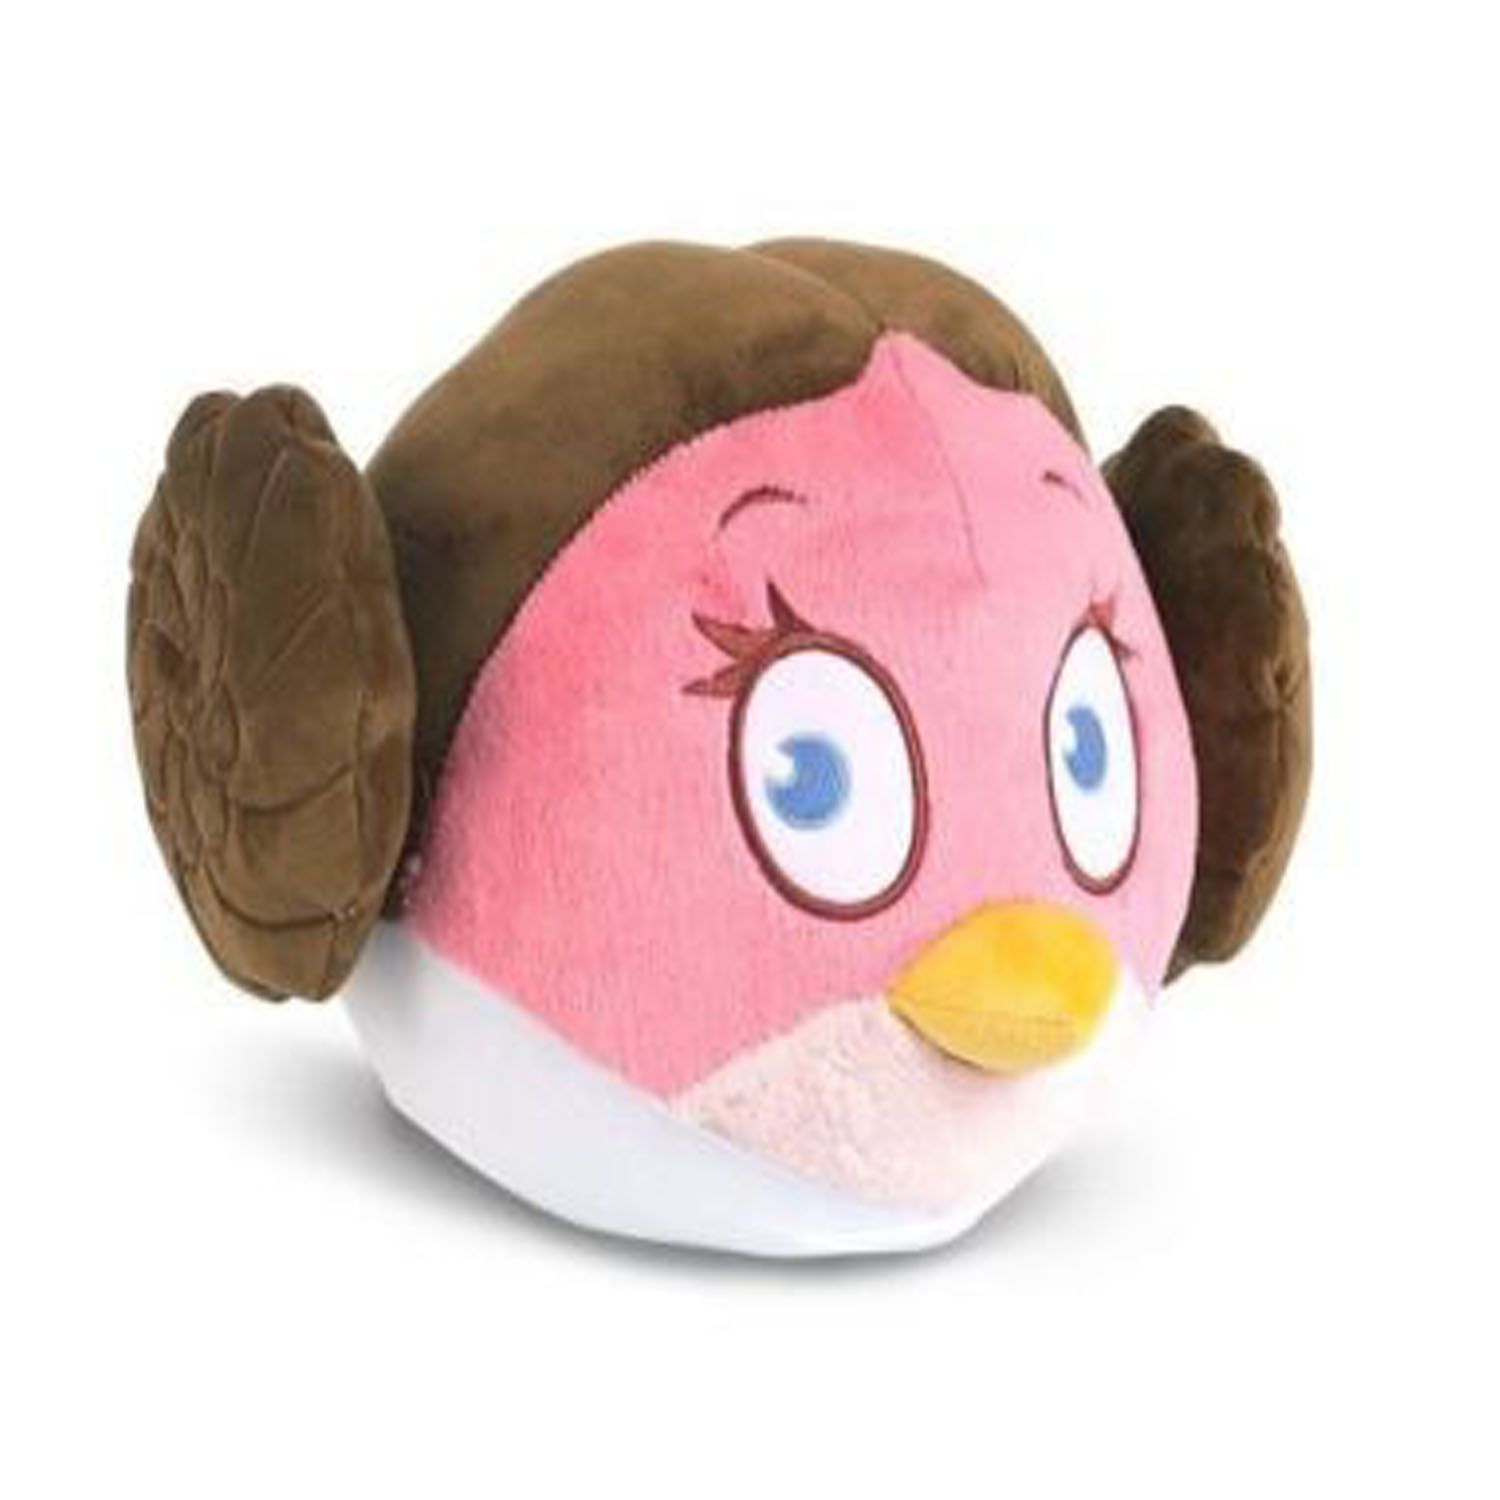 OFFICIAL ANGRY BIRDS SOFT TOYS SPACE STAR WARS RIO WINTER PLUSH 5